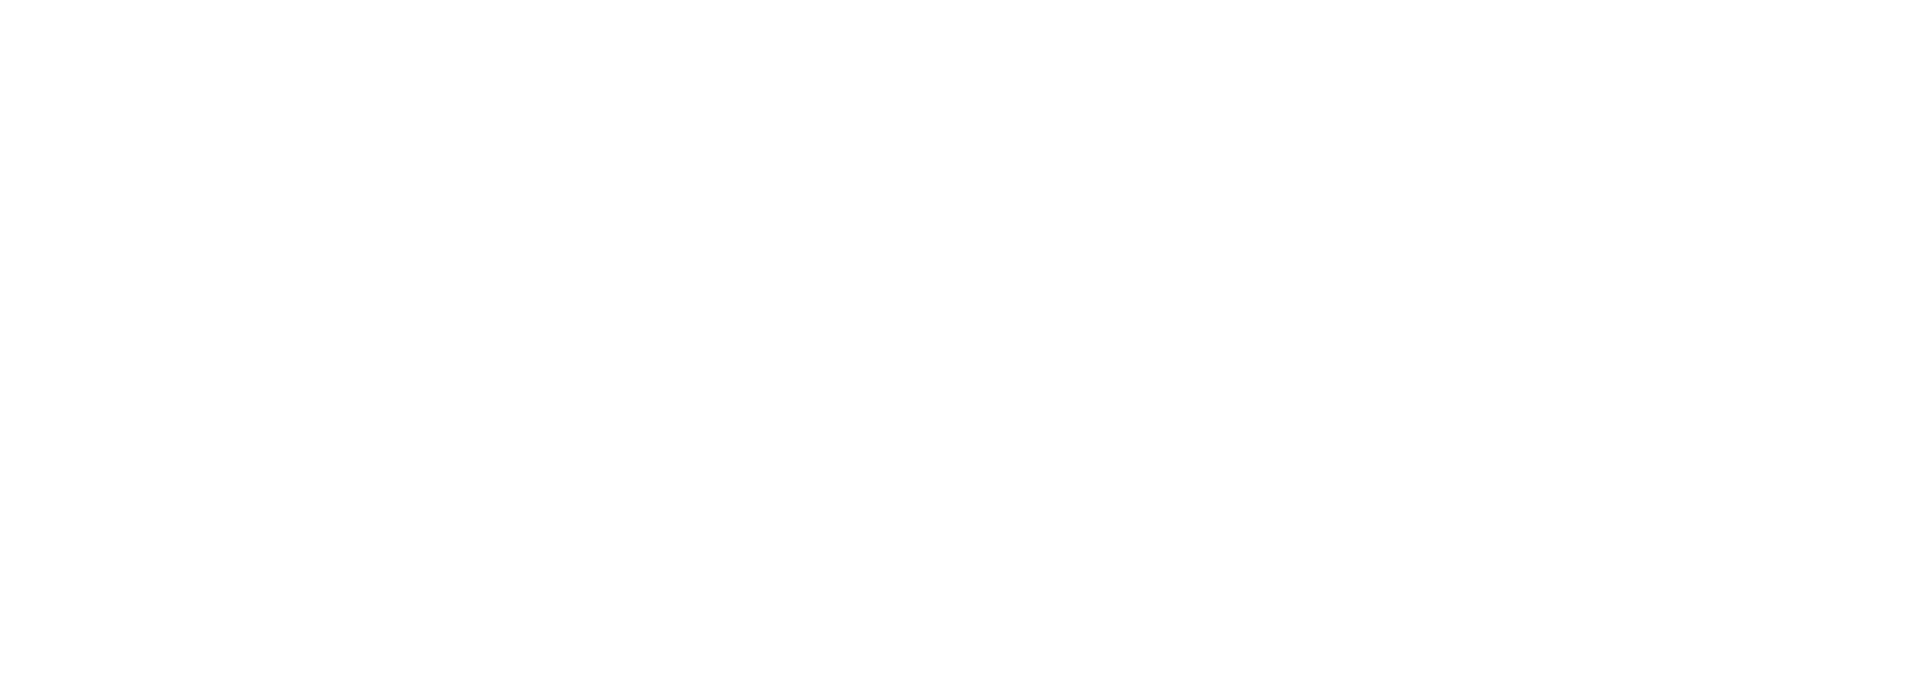 V Vicenzutto 17A - Everytime